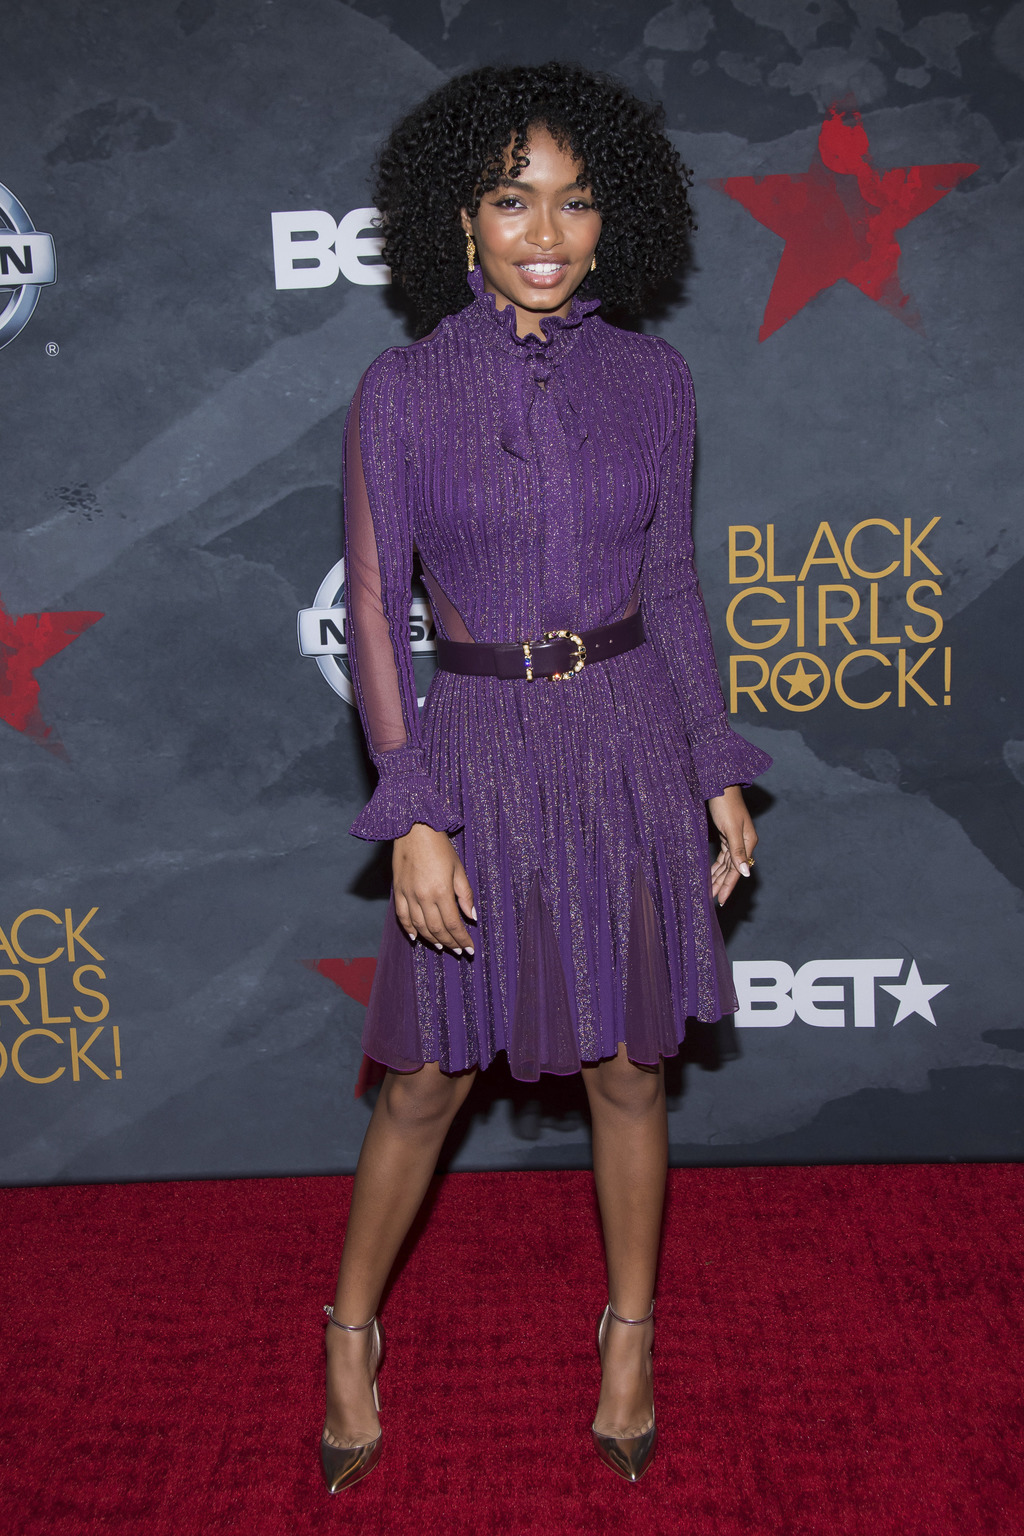 Yara Shahidi attends the Black Girls Rock! Awards at the New Jersey Performing Arts Center on Saturday, Aug. 5, 2017, in Newark, N.J. (Photo by Charle...